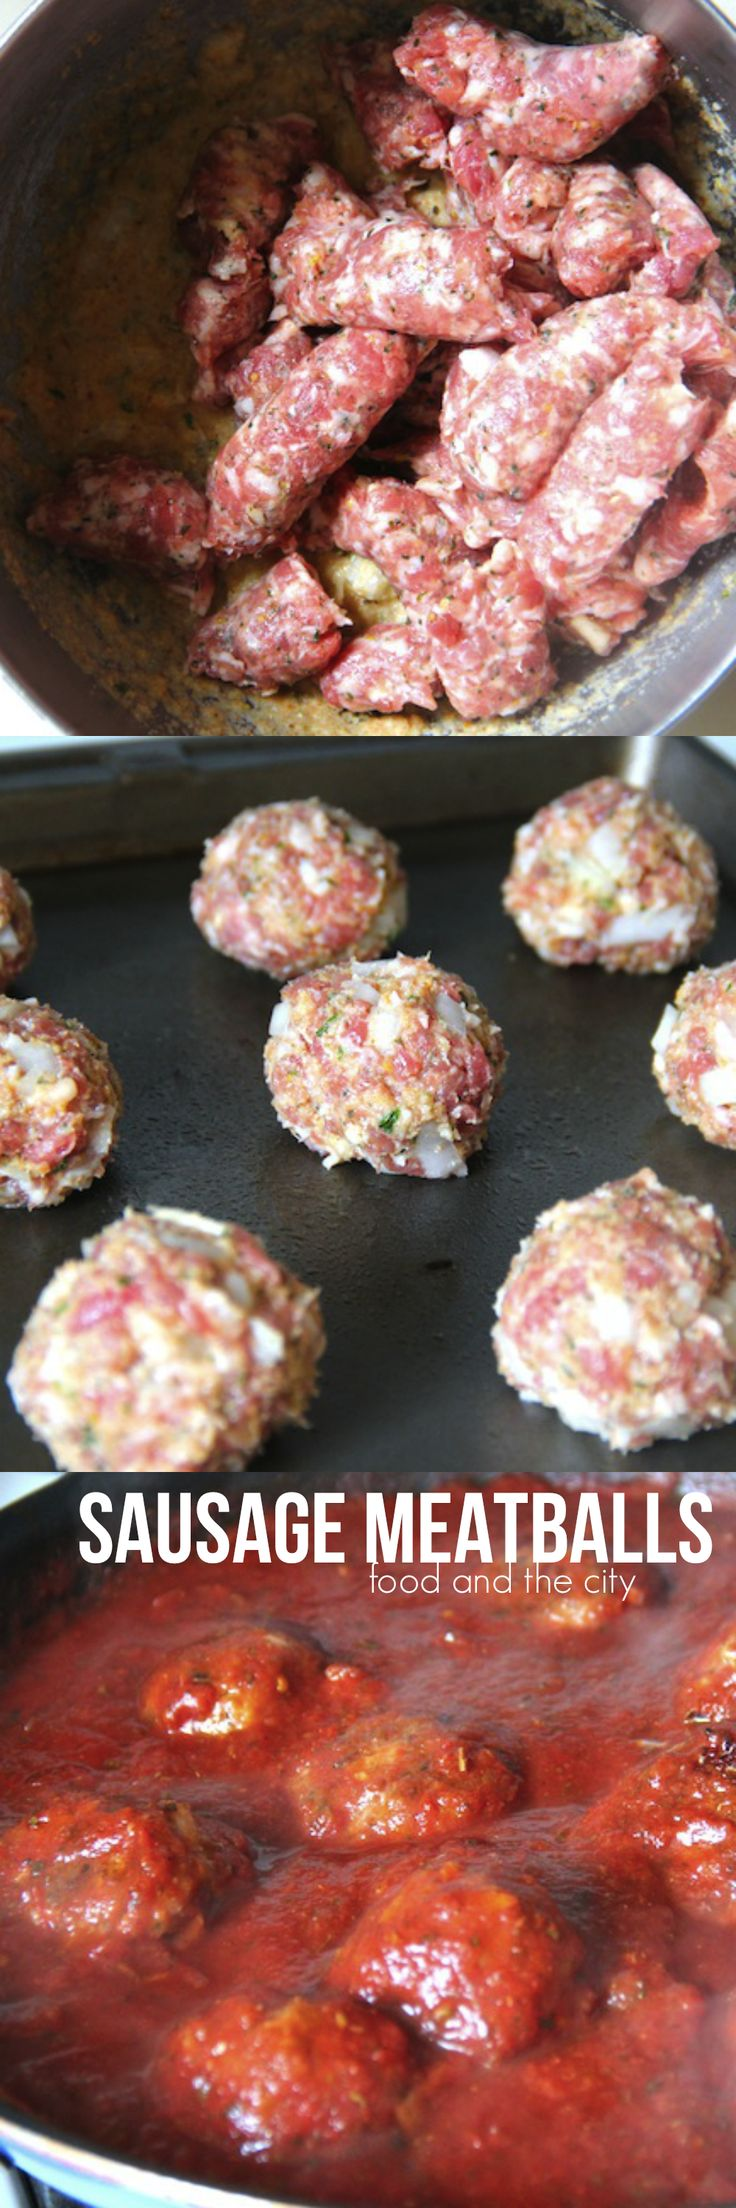 Sausage Meatballs like ma' used to make! | Food and the City